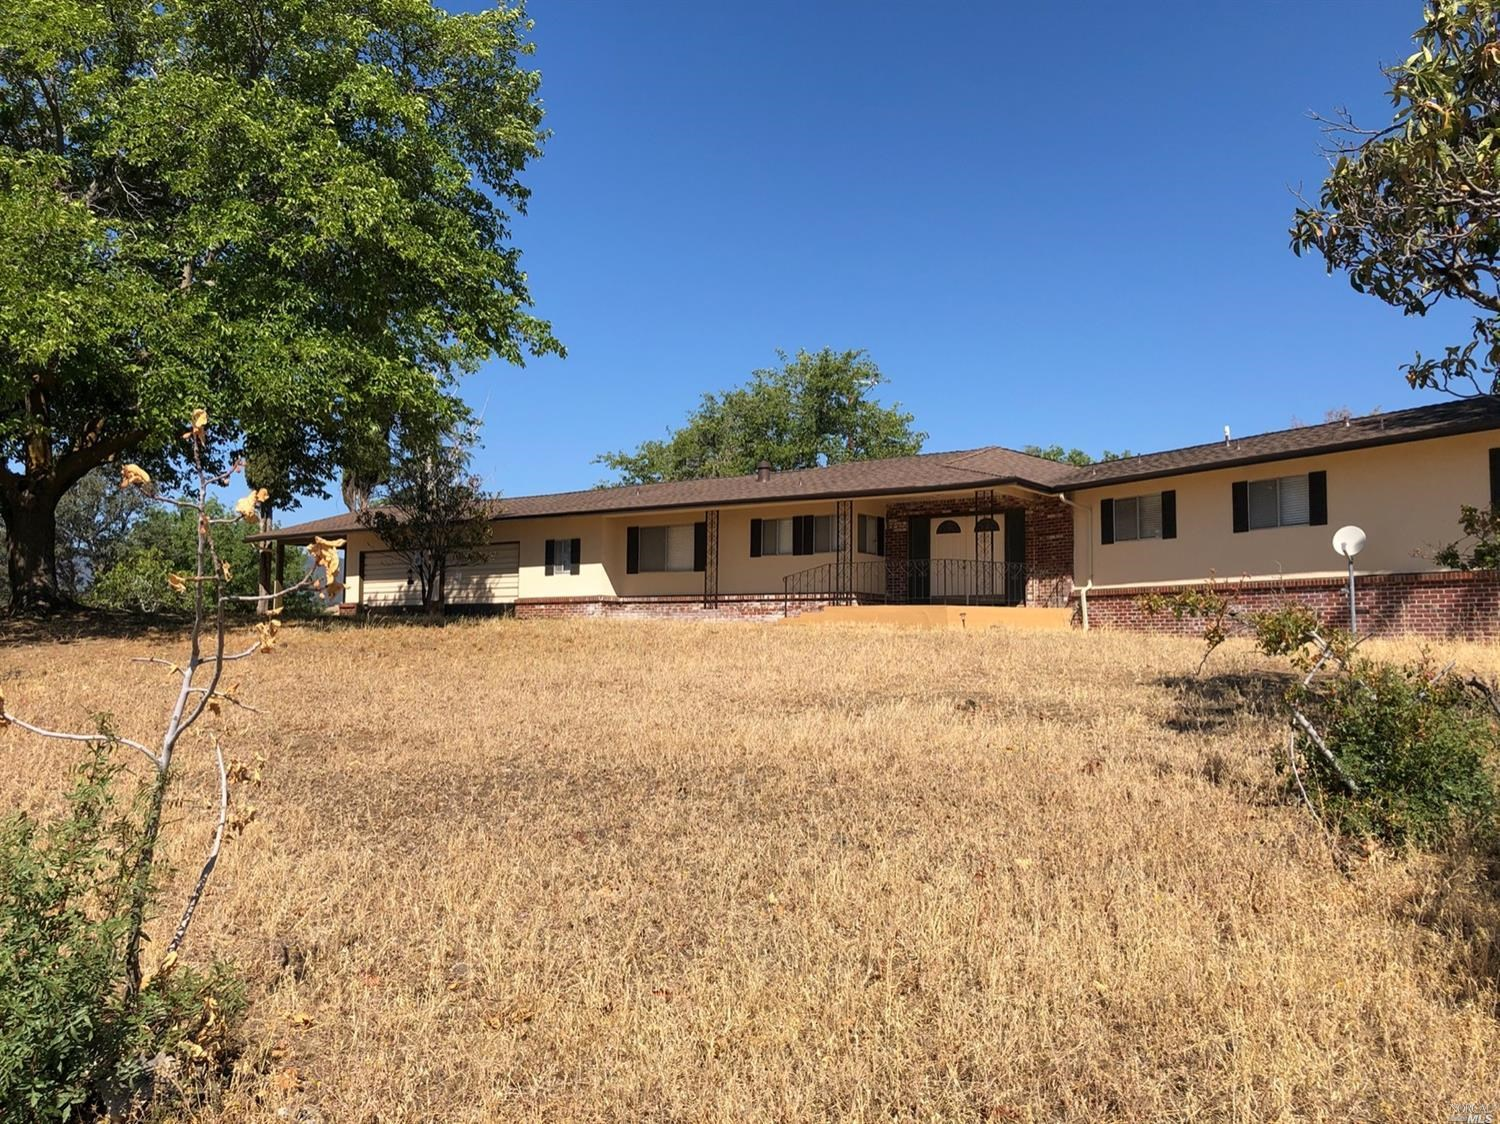 Solano County Ranch Home and Acreage For Sale